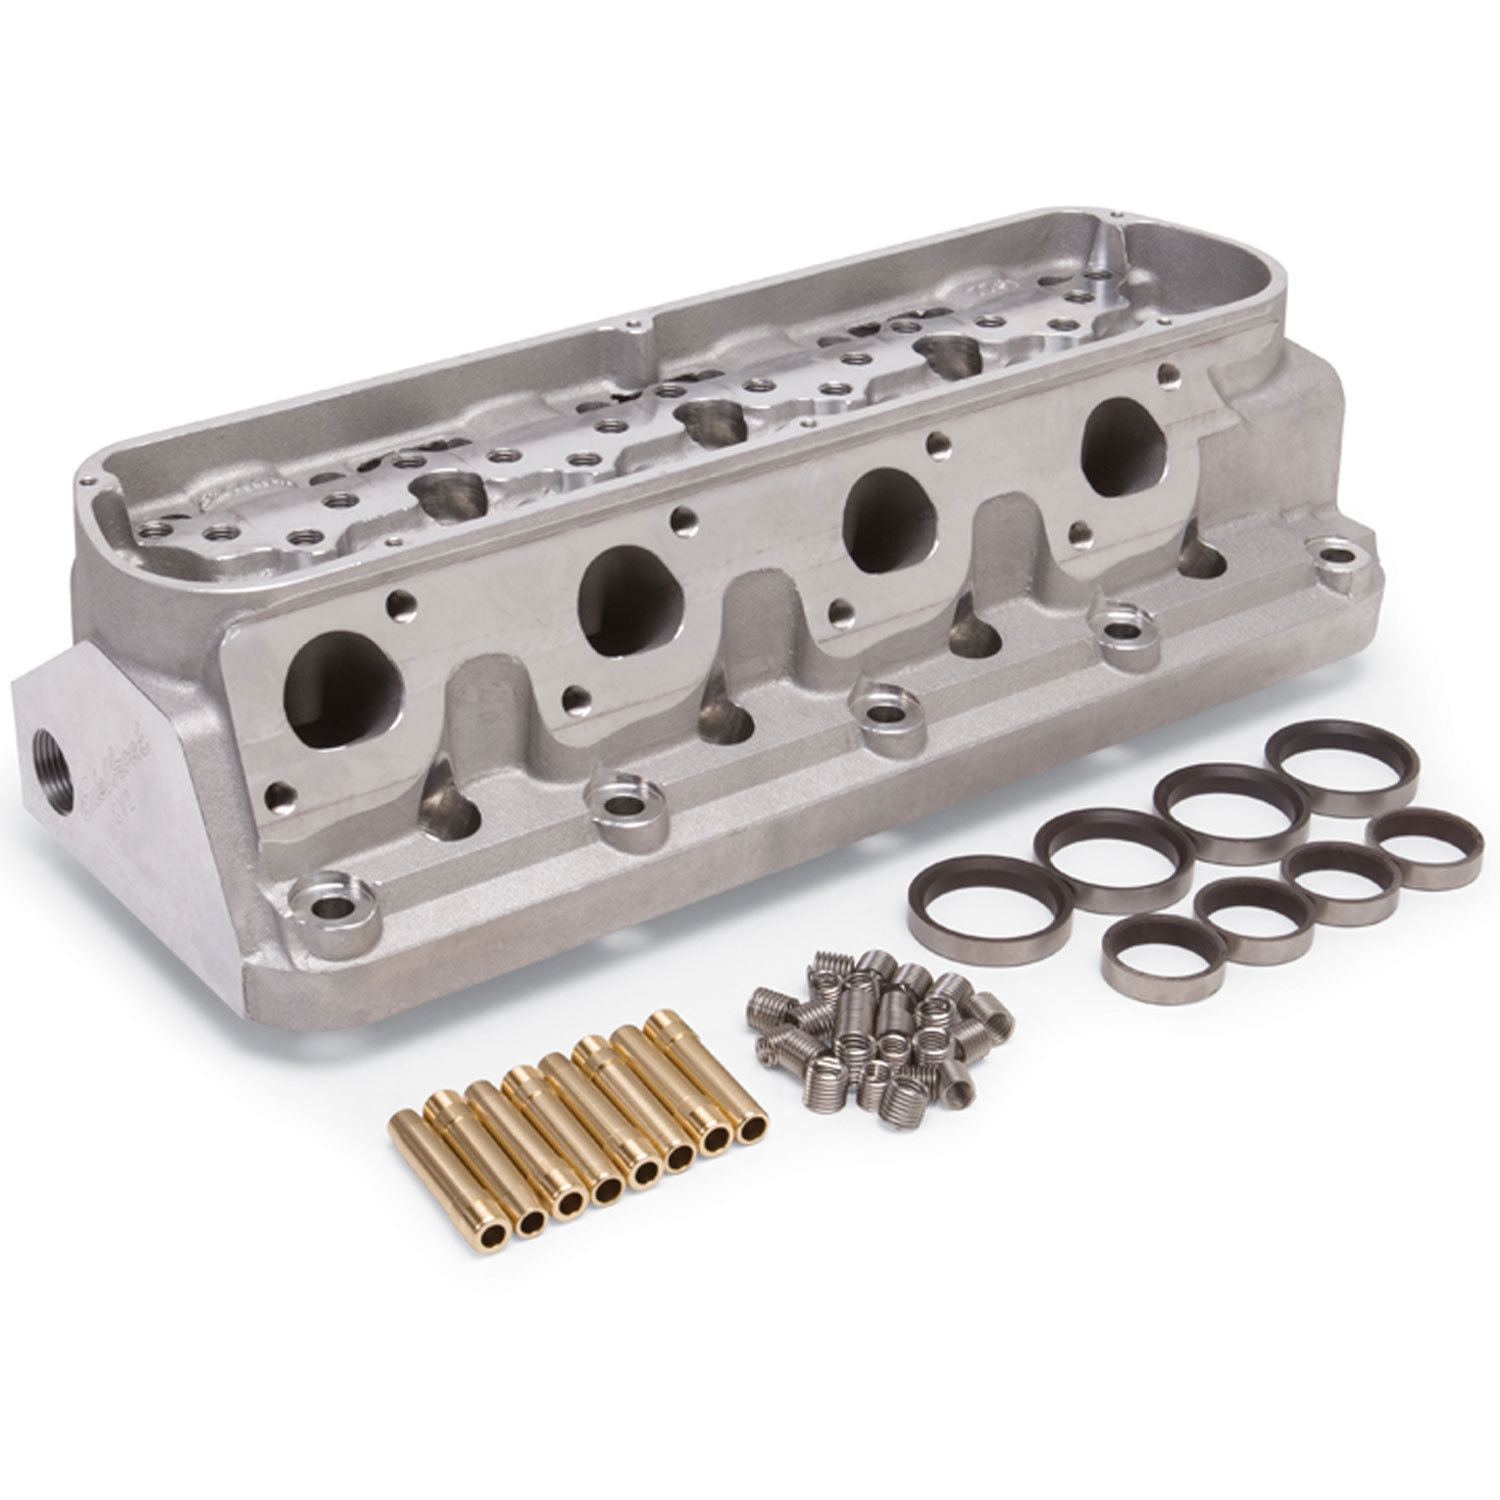 Main FW-2 Billet Cylinder Head Raised Intake Port